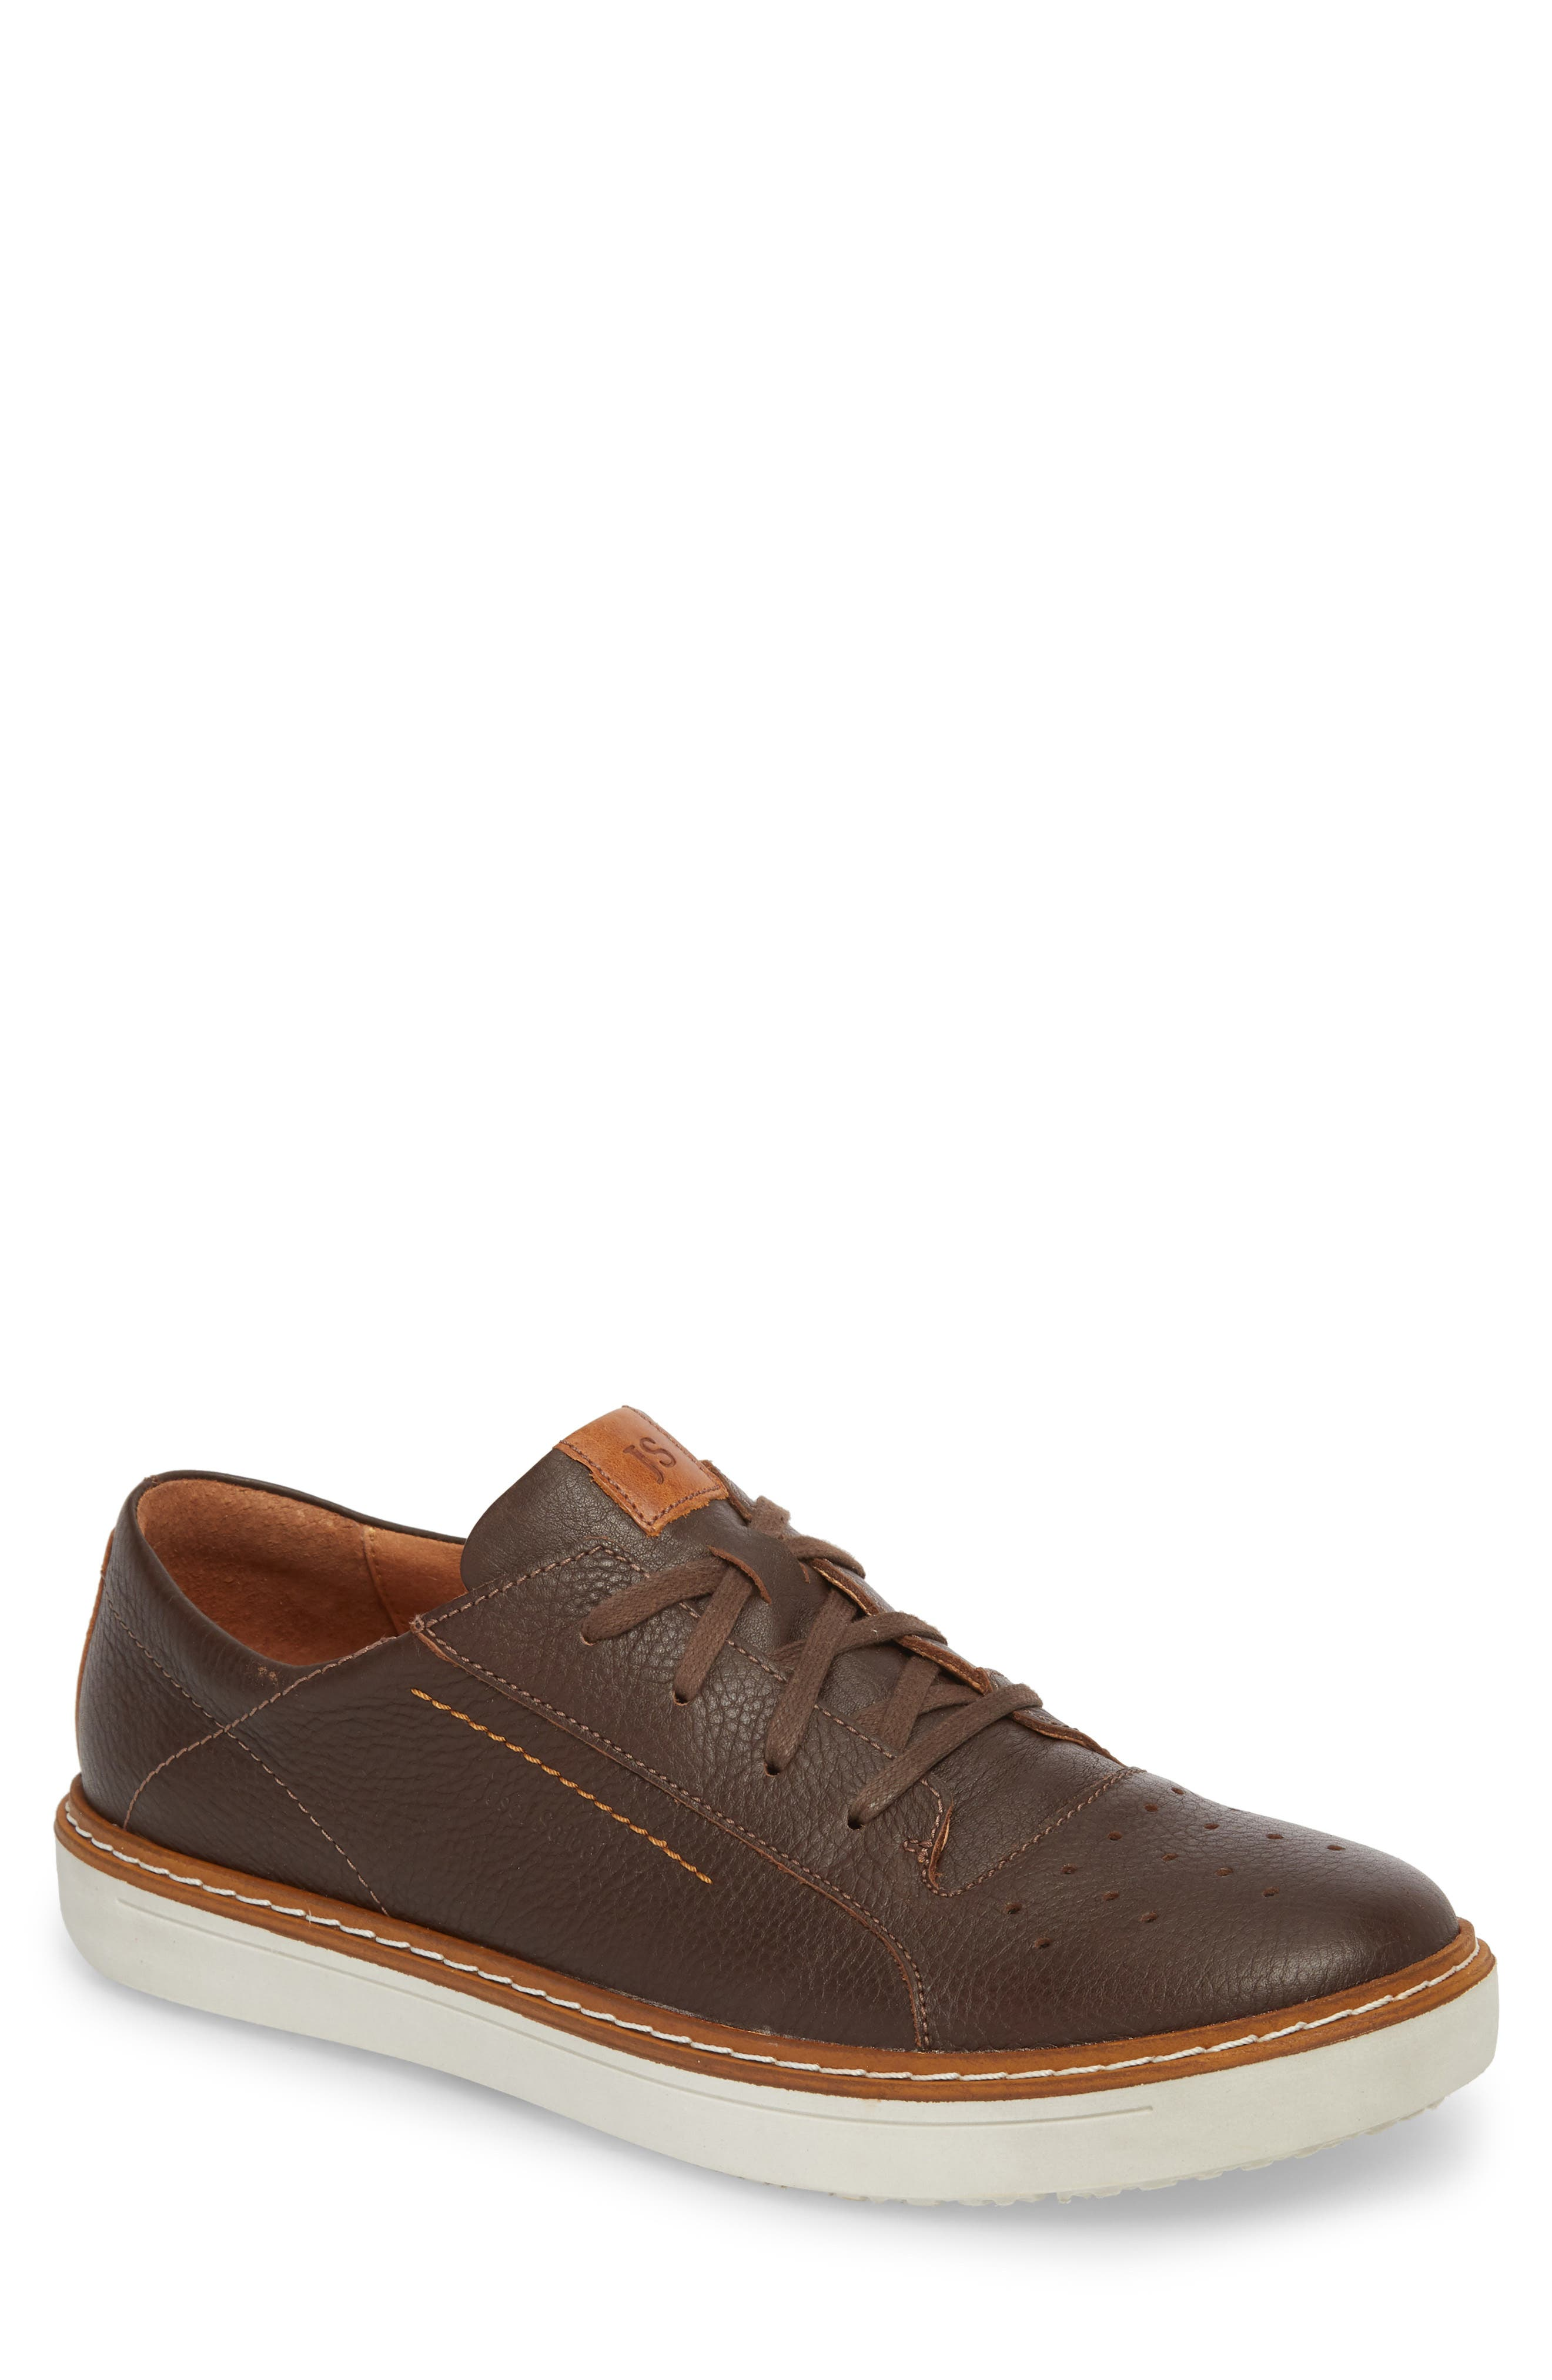 Quentin 03 Low Top Sneaker,                             Main thumbnail 1, color,                             Brown Kombi Leather